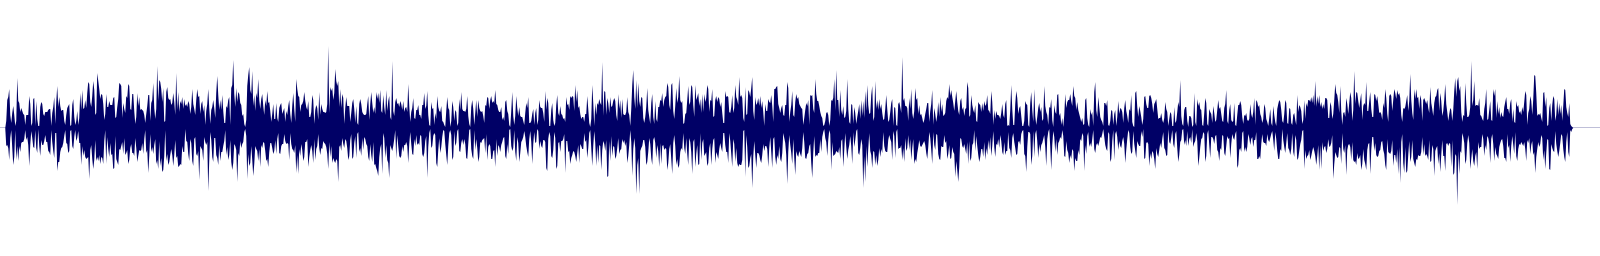 waveform of track #93622